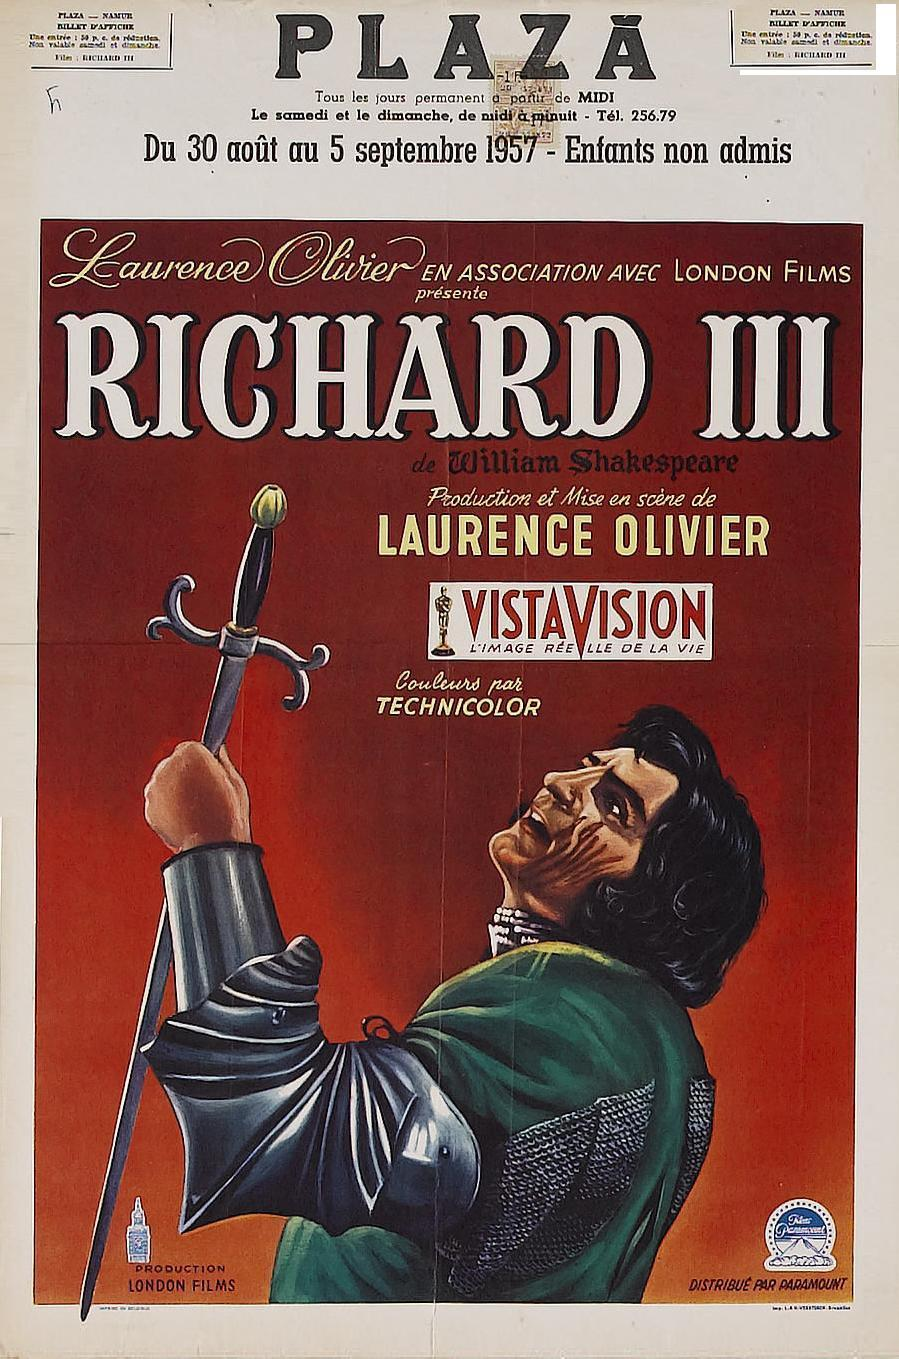 a summary of the film review of richard iii